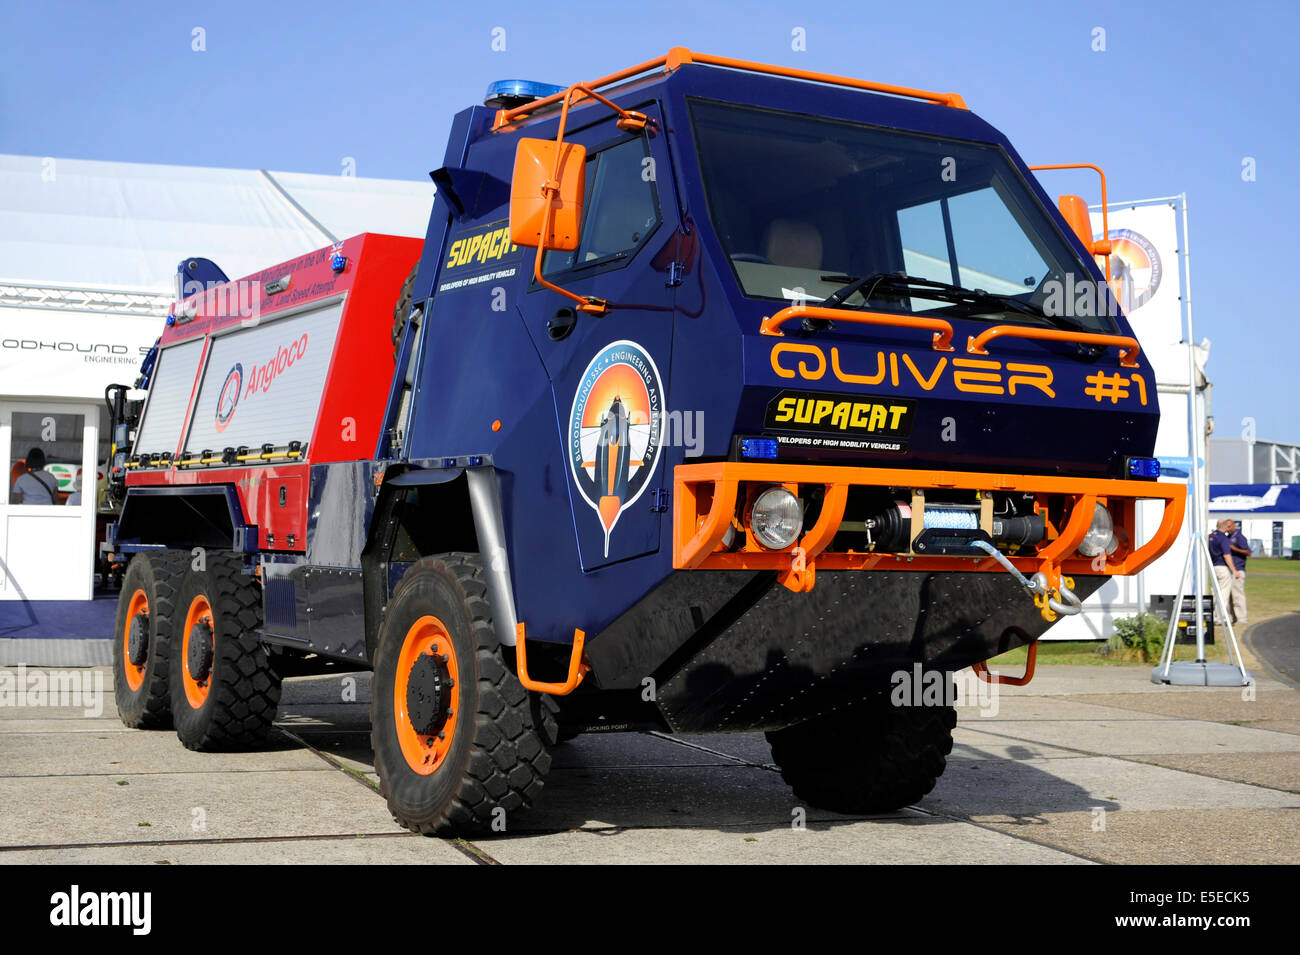 Supacat HMT 600 6X6 All Terrain Vehicle, utilised as a support vehicle for the Bloodhound SSC hybrid rocket car - Stock Image